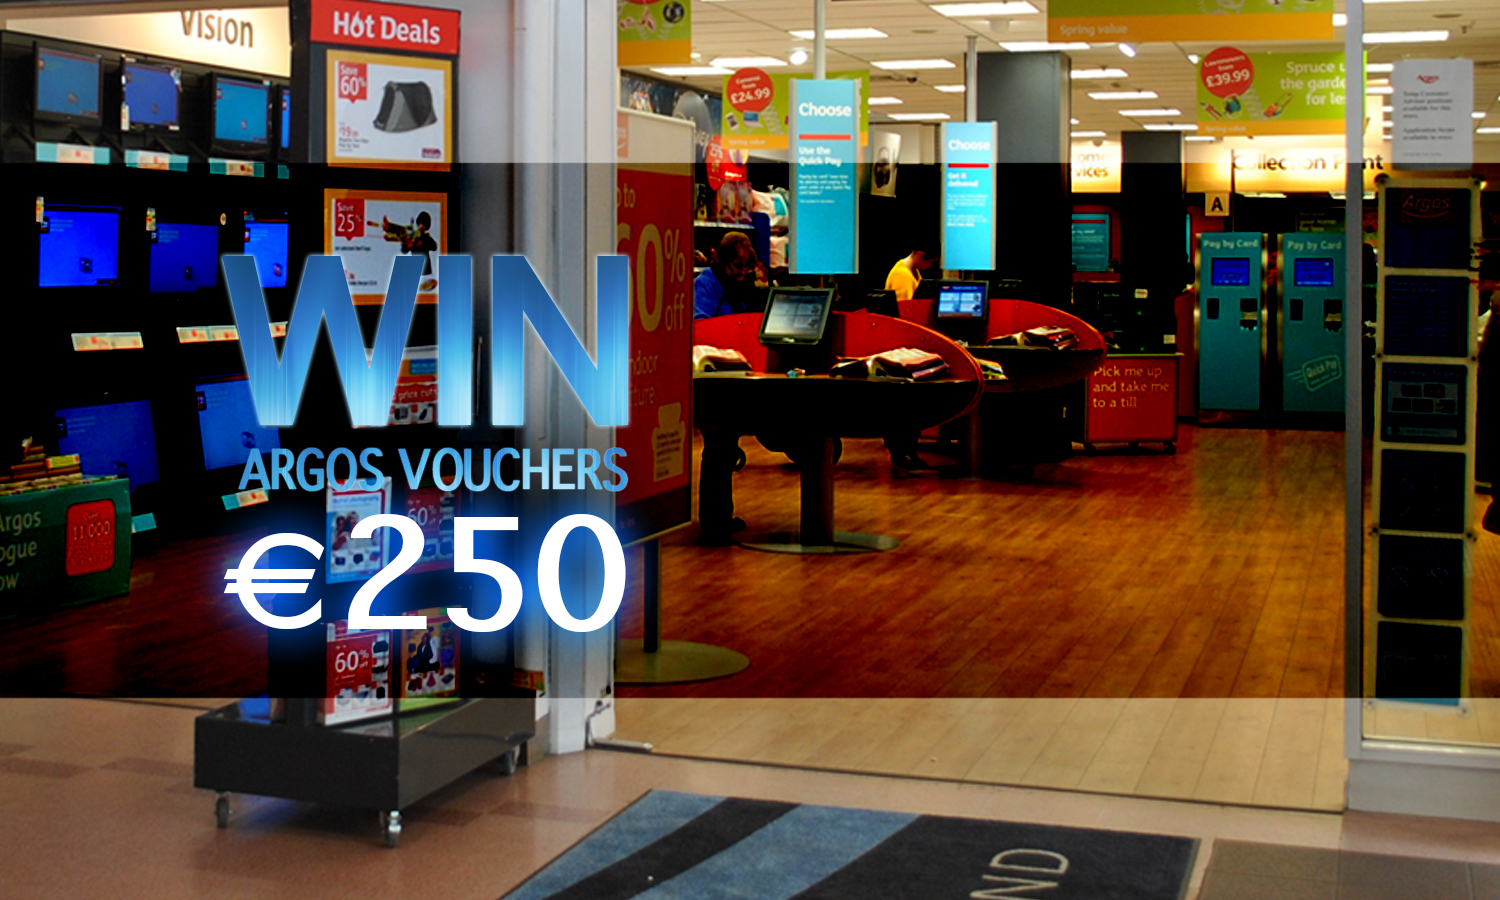 Win €250 Argos Shopping Vouchers